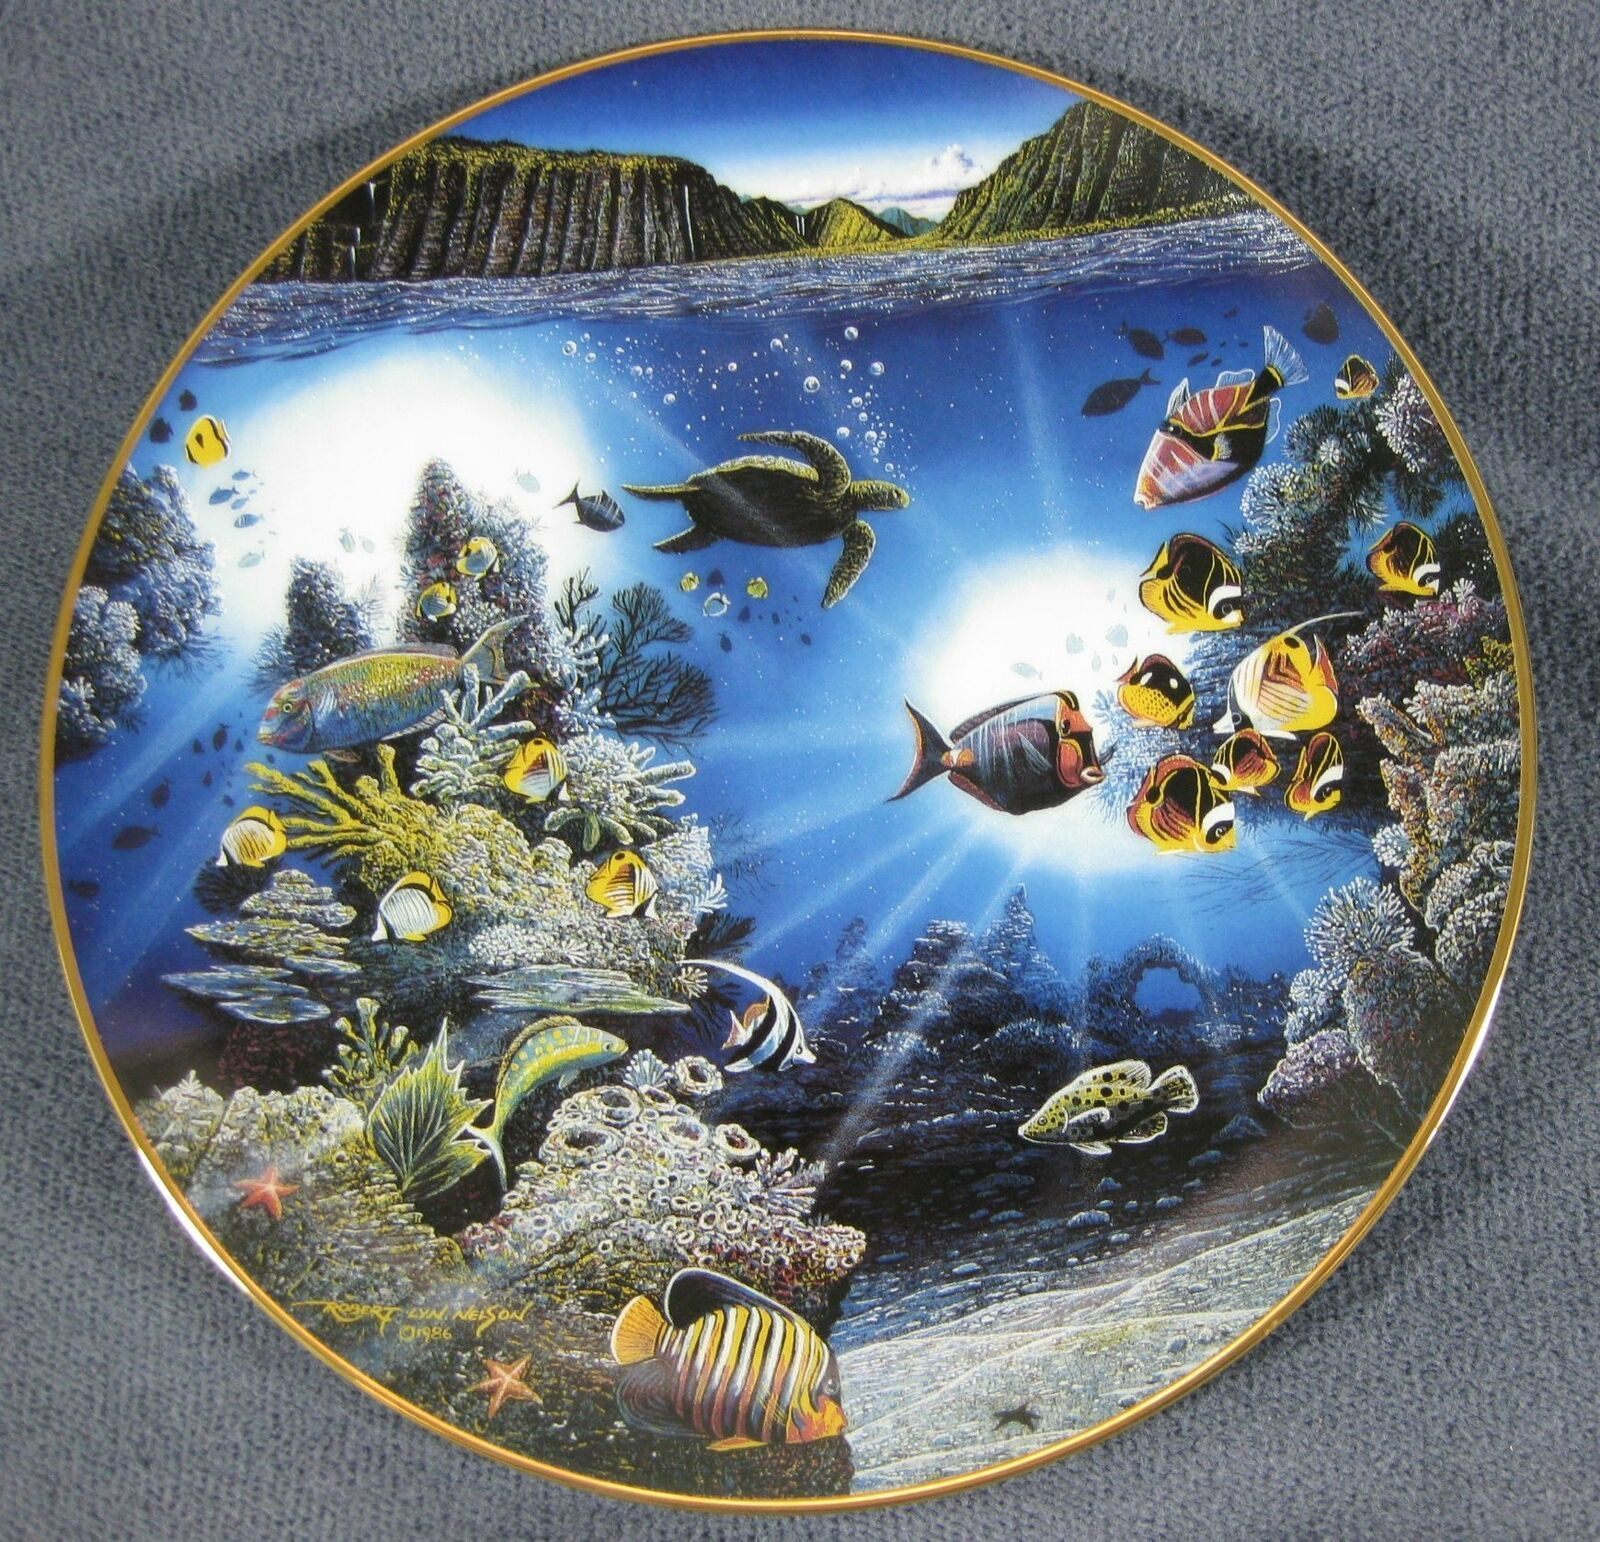 Primary image for Serenity Of Waipio Collector Plate Underwater Paradise 1991 Robert Lyn Nelson